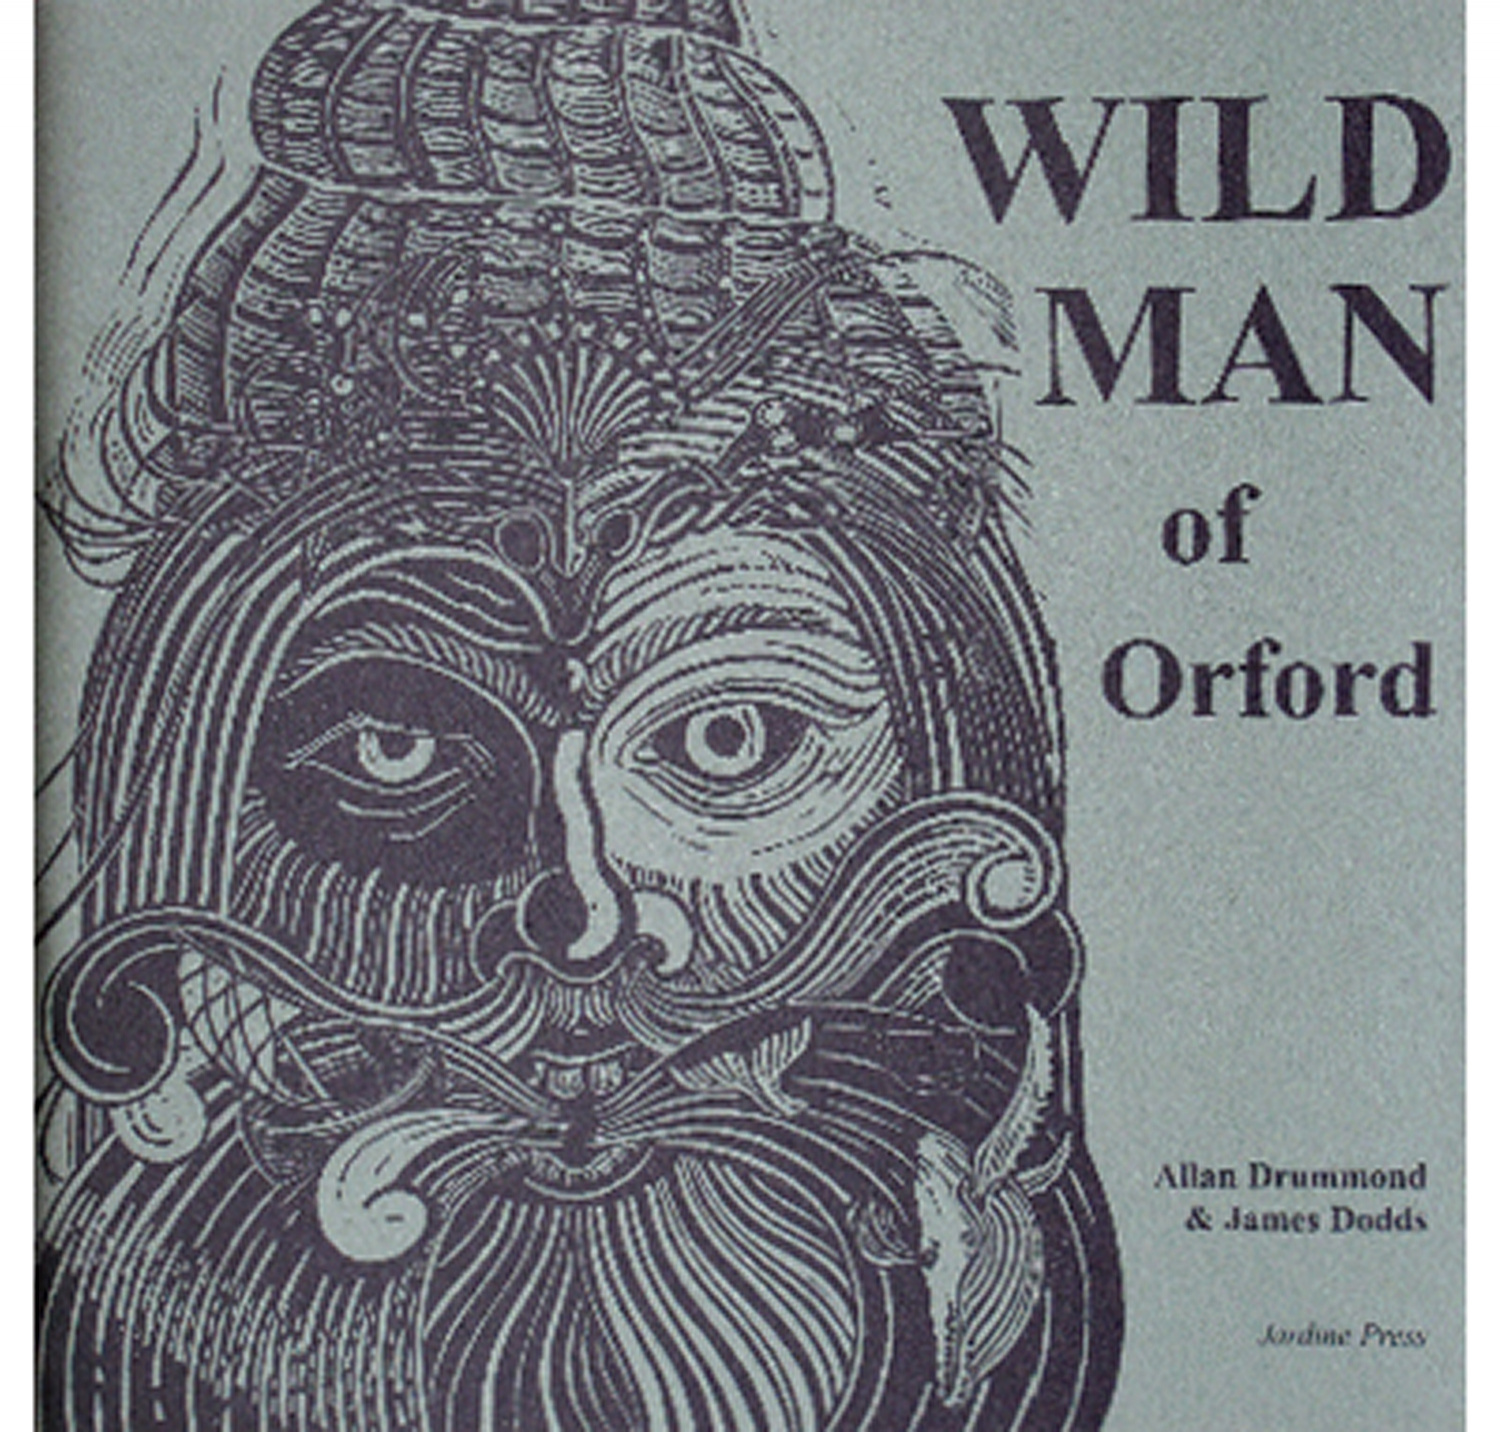 Wild Man of Orford by James Dodds